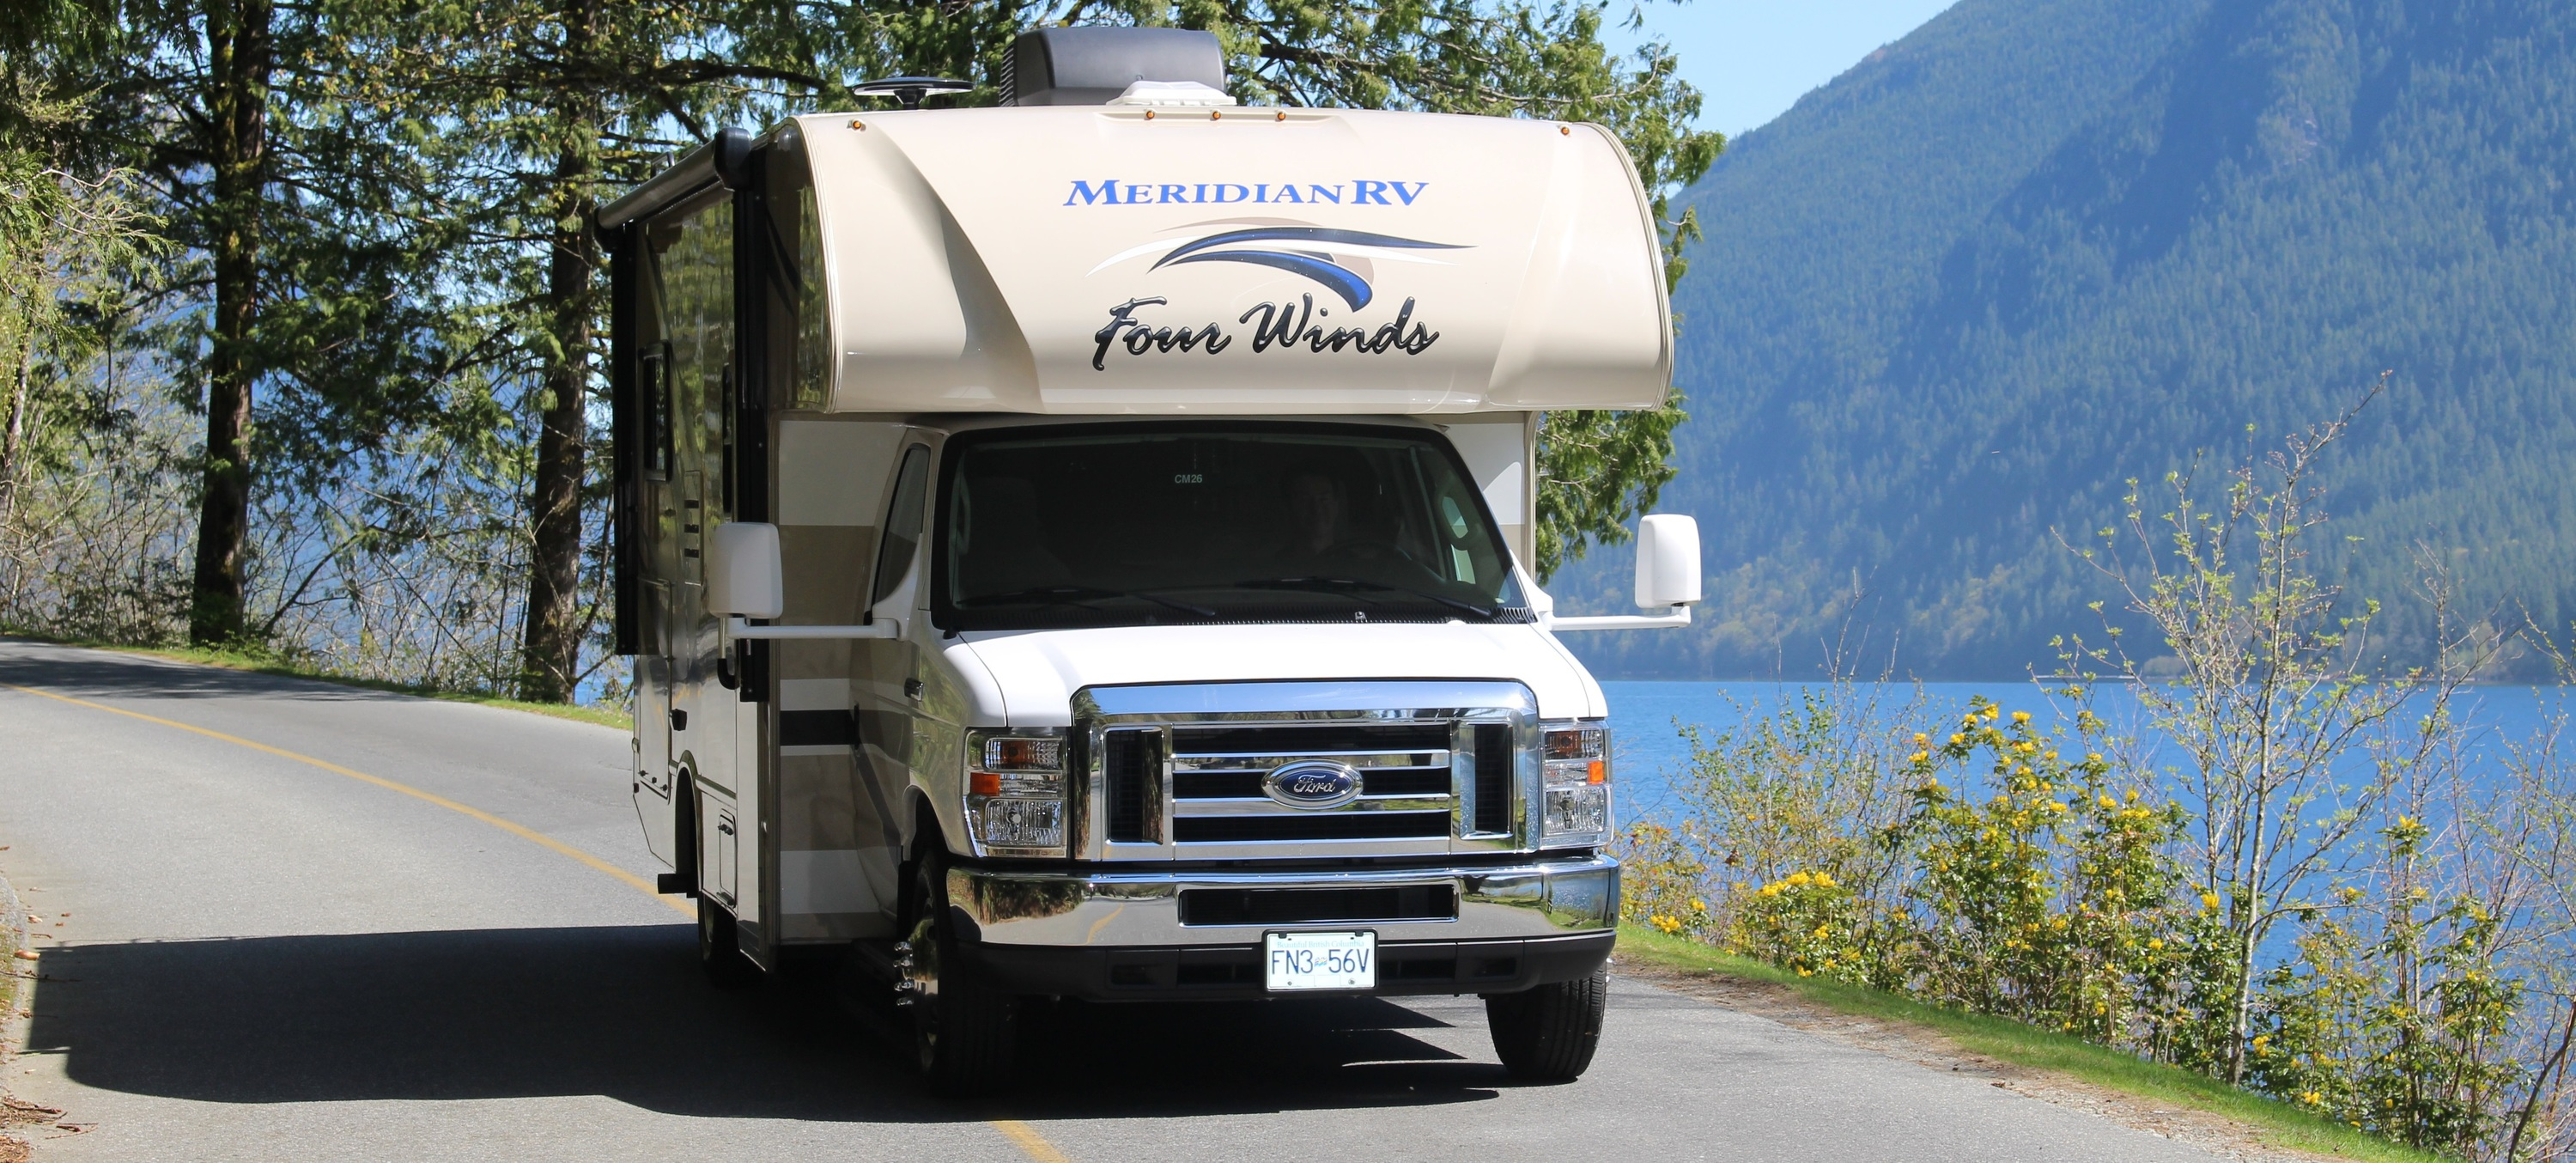 RV Rental Terms And Conditions | SW British Columbia | RV Rental